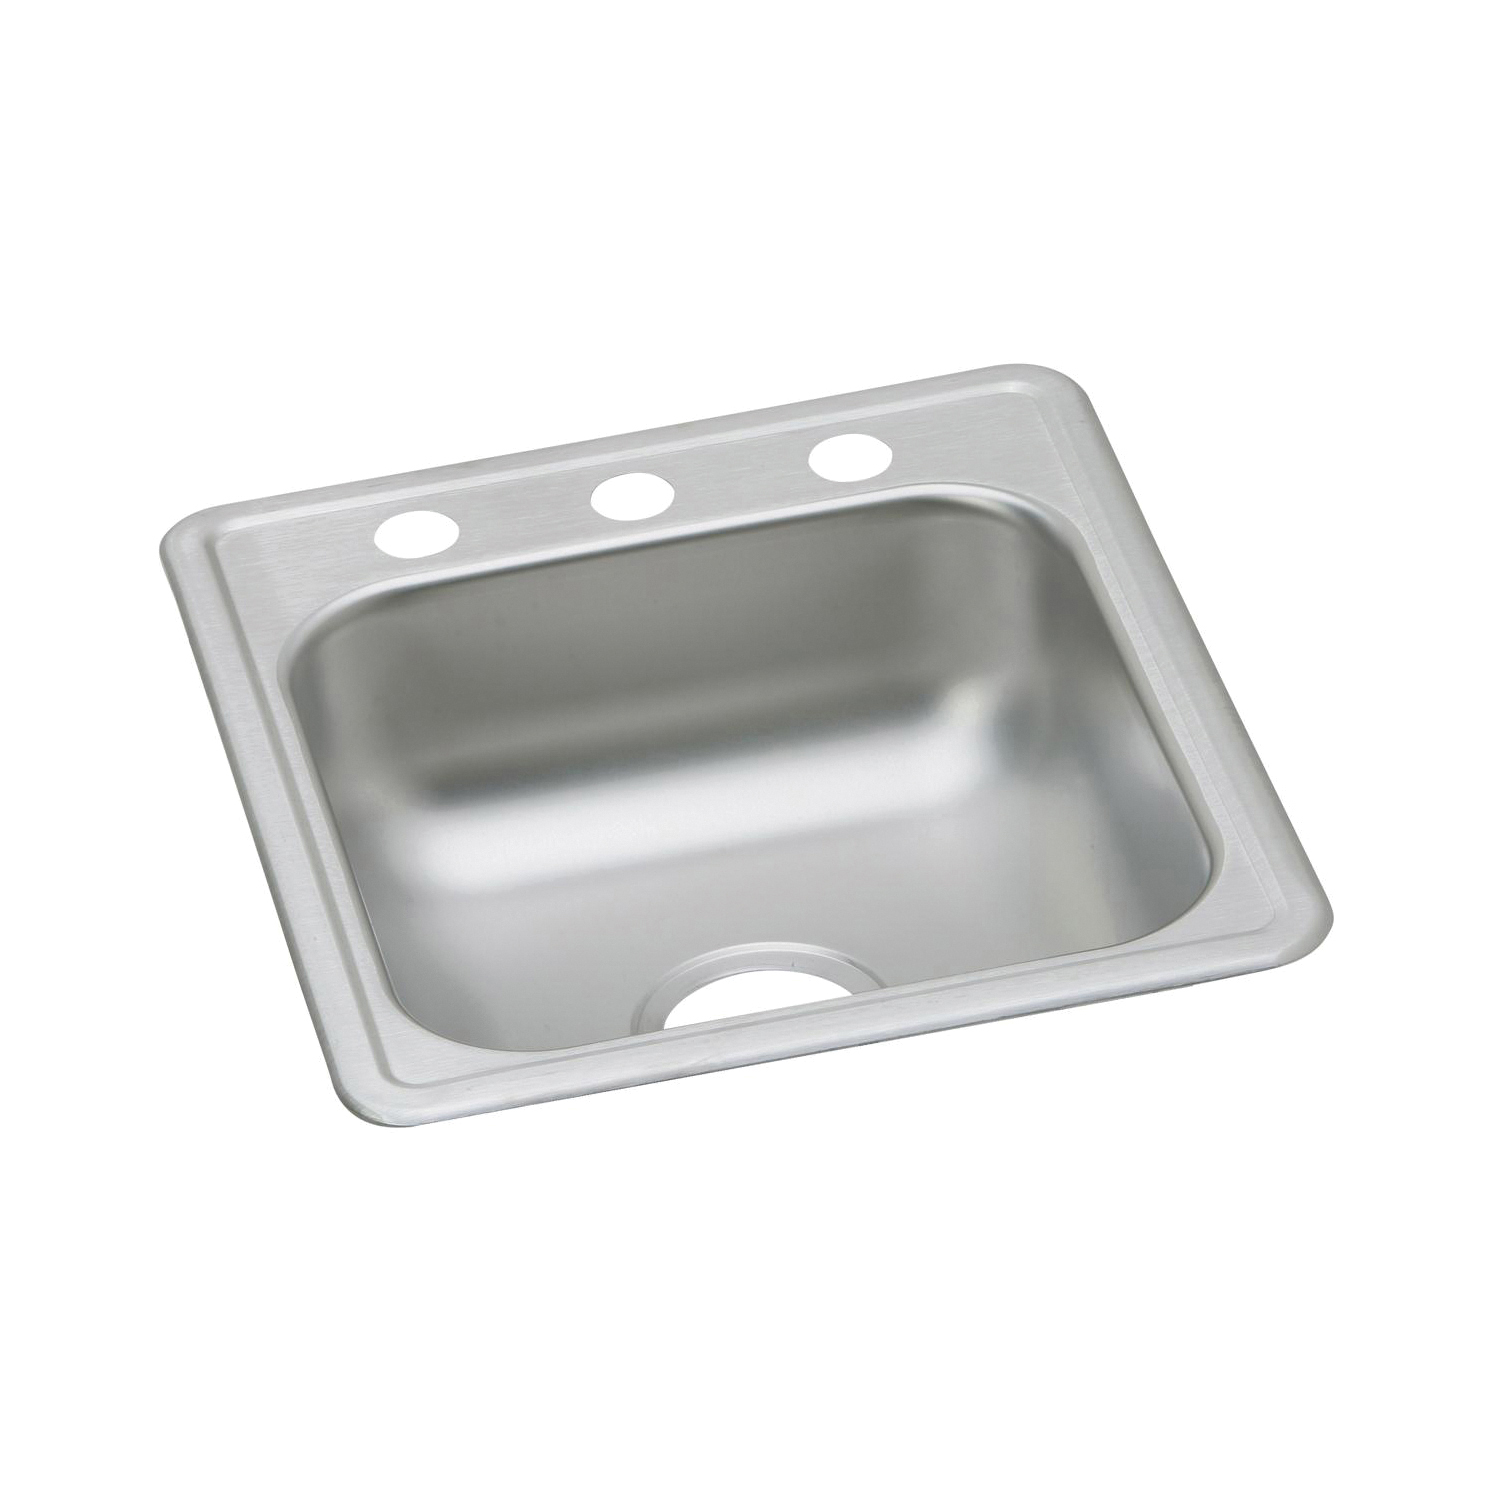 Elkay D117192 Dayton Bar Sink, Rectangular, 2 Faucet Holes, 19 in W x 6-3/16 in D x 17 in H, Top Mount, Stainless Steel, Satin